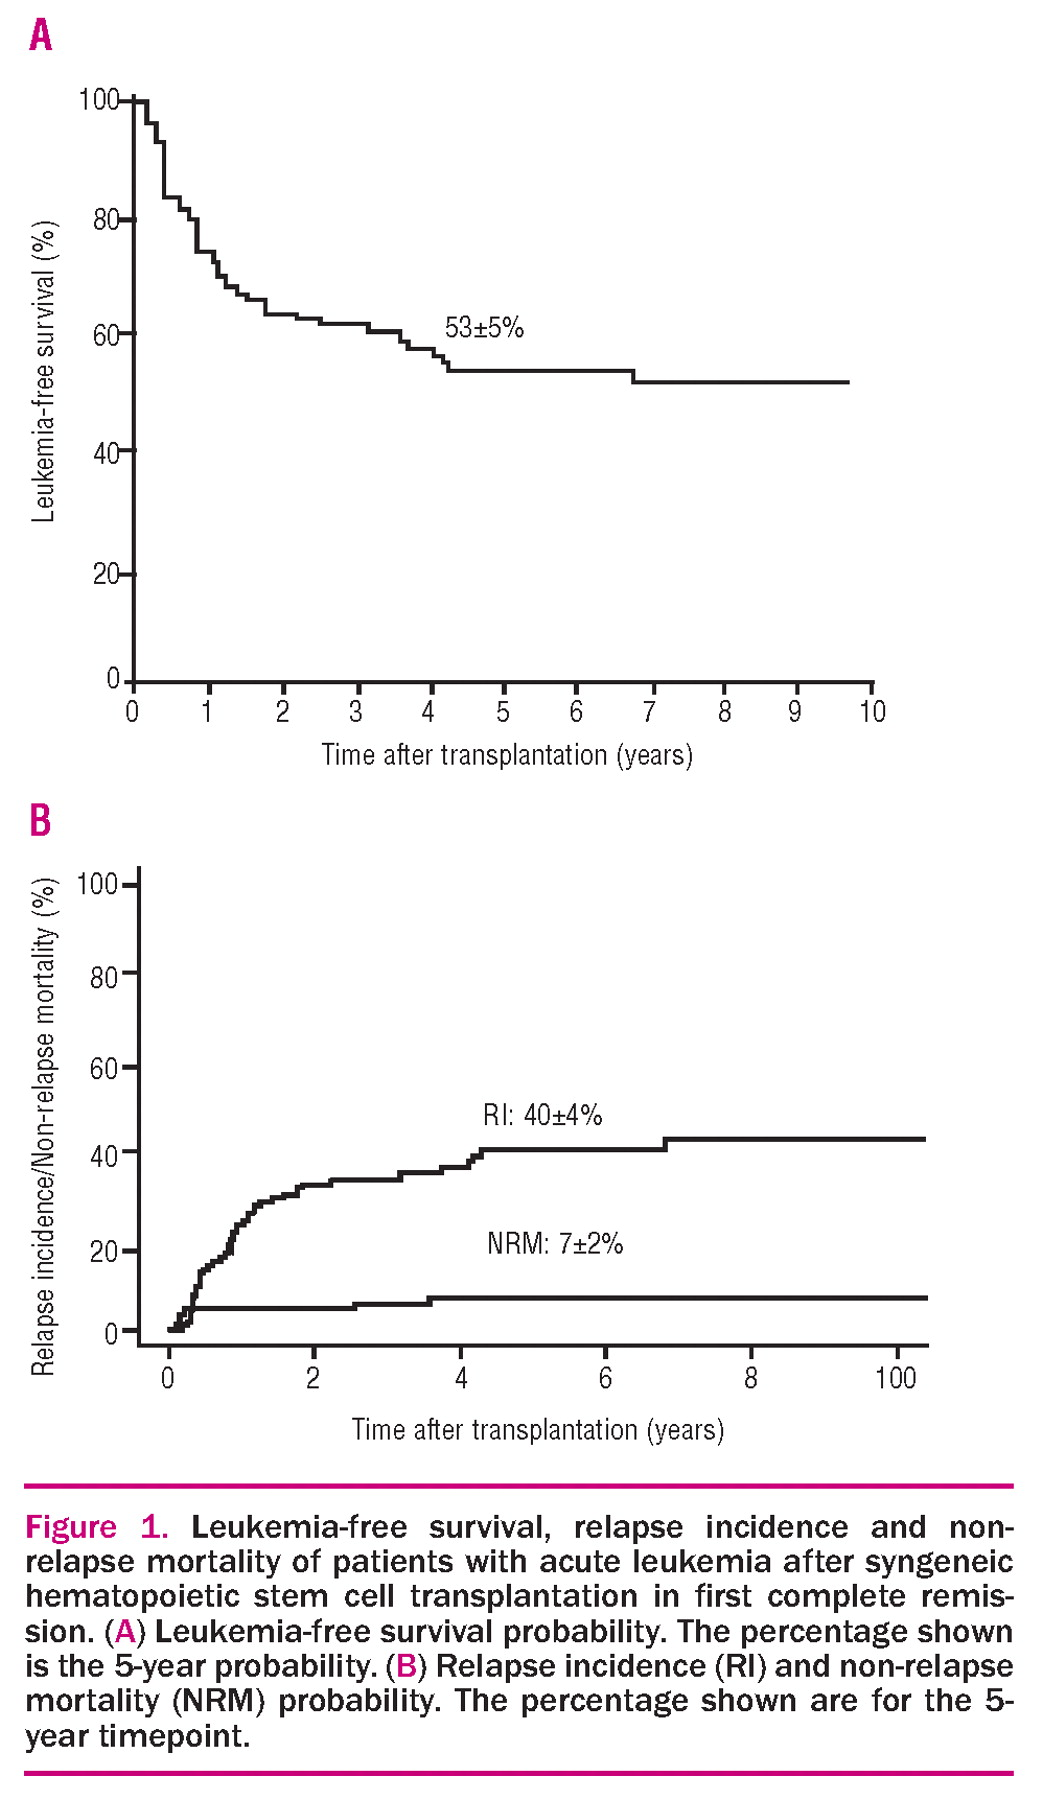 Results Of Syngeneic Hematopoietic Stem Cell Transplantation For Acute Leukemia Risk Factors For Outcomes Of Adults Transplanted In First Complete Remission Haematologica